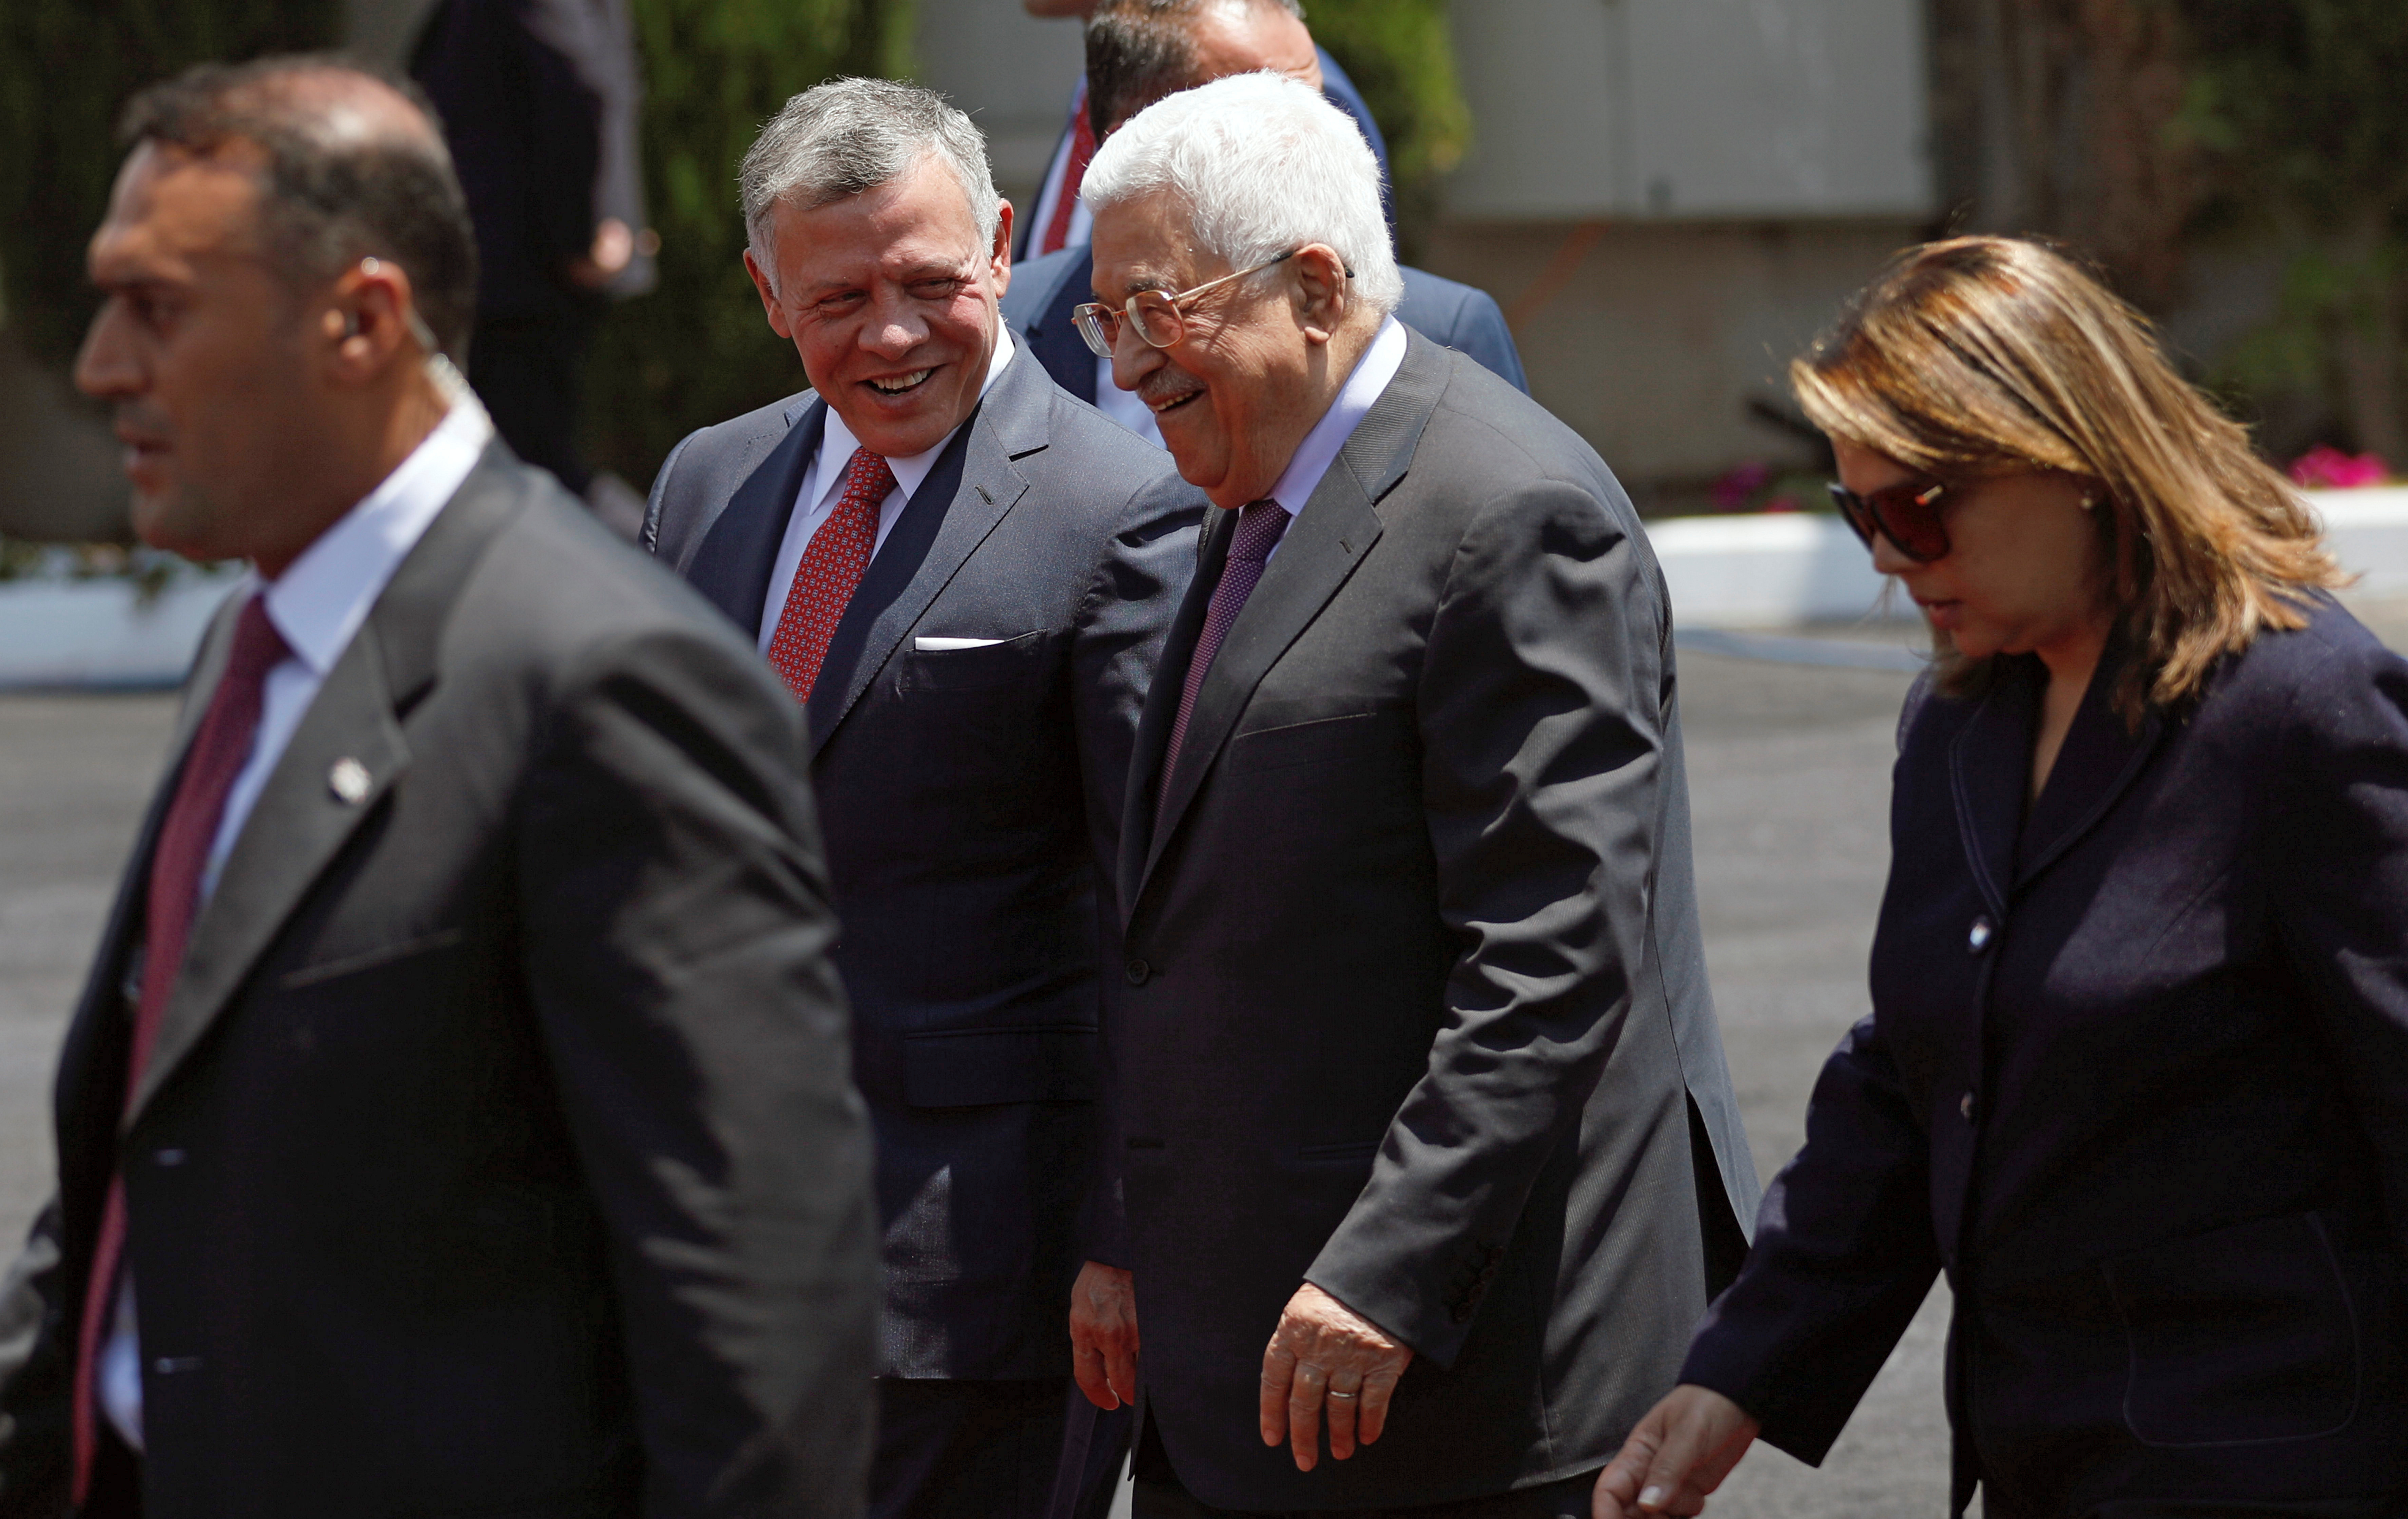 Jordan's King Abdullah II walks with Palestinian President Mahmoud Abbas during a reception ceremony in the West Bank city of Ramallah, August 7, 2017.